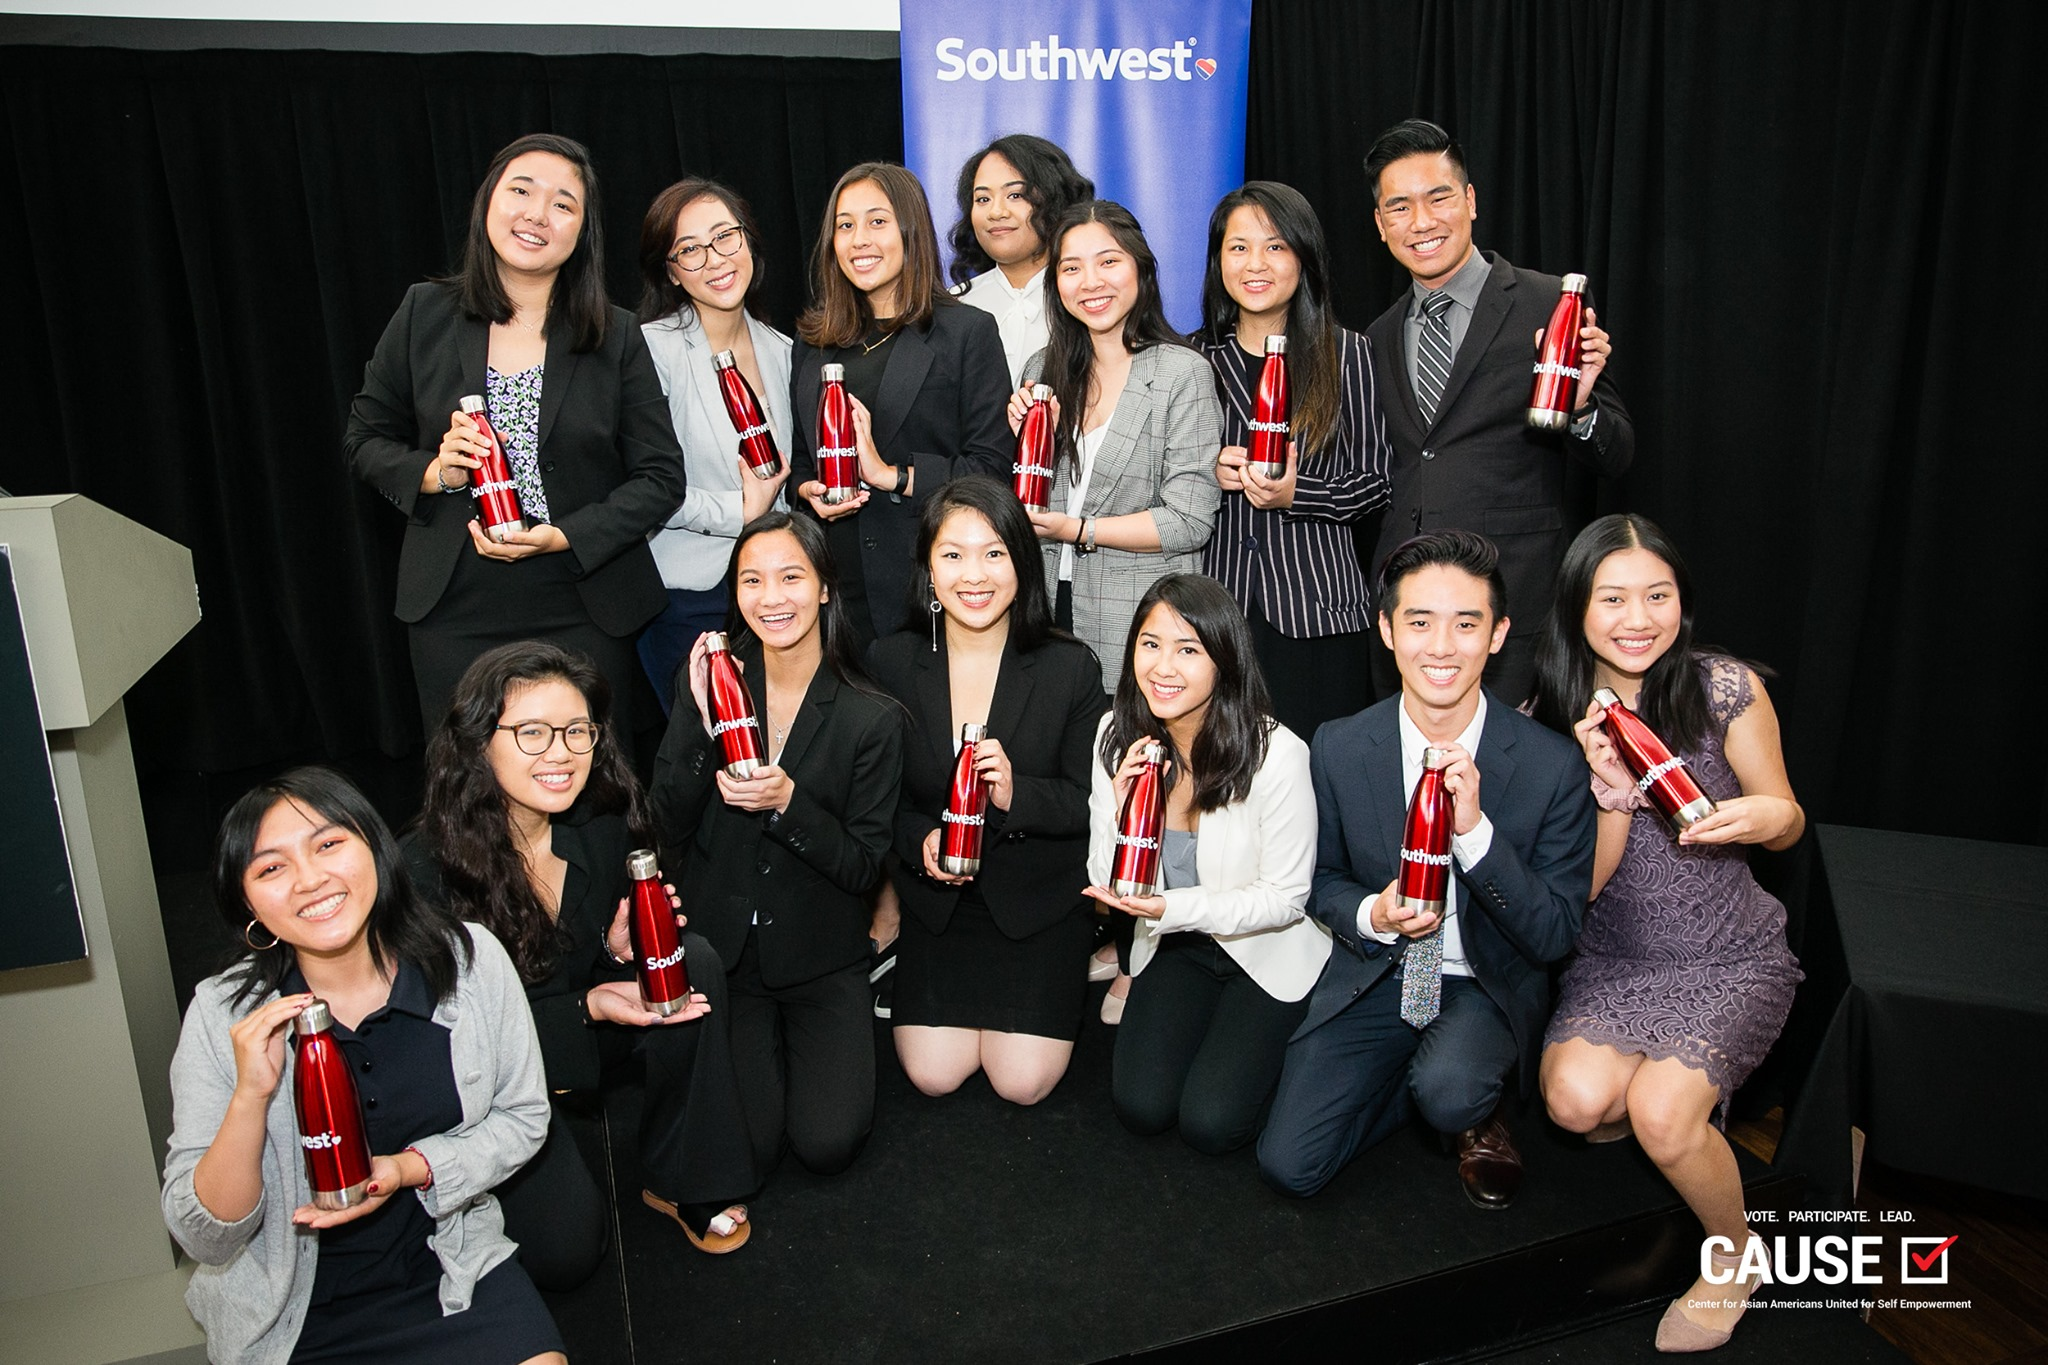 2019 CAUSE Leadership Academy interns and Southwest Airlines